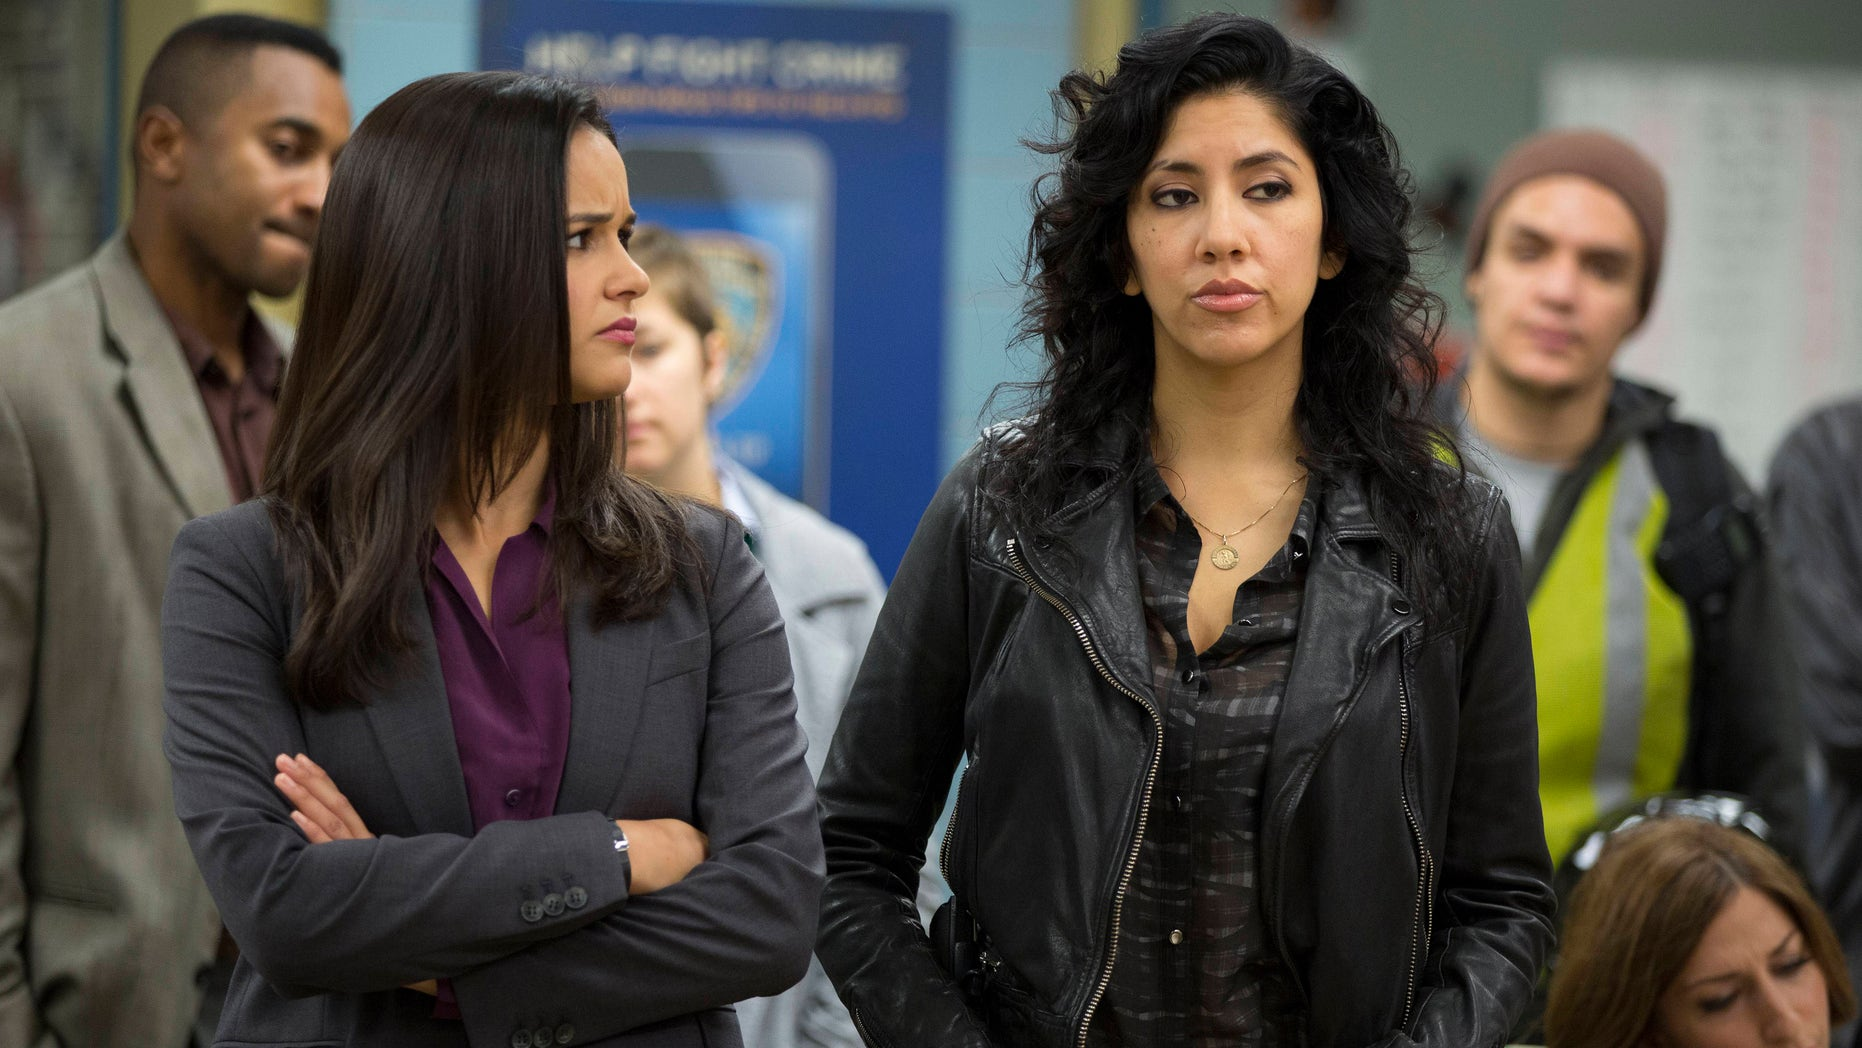 """In this image released by Fox, Melissa Fumero, left, and Stephanie Beatriz appear in a scene from the comedy series, """"Brooklyn Nine-Nine."""" Beatriz worked extensively in theater and enjoyed the freedom of appearing in a range of âcolorblindâ stage roles as well as playing specifically Latina characters. (AP Photo/Fox, John Fleenor)"""